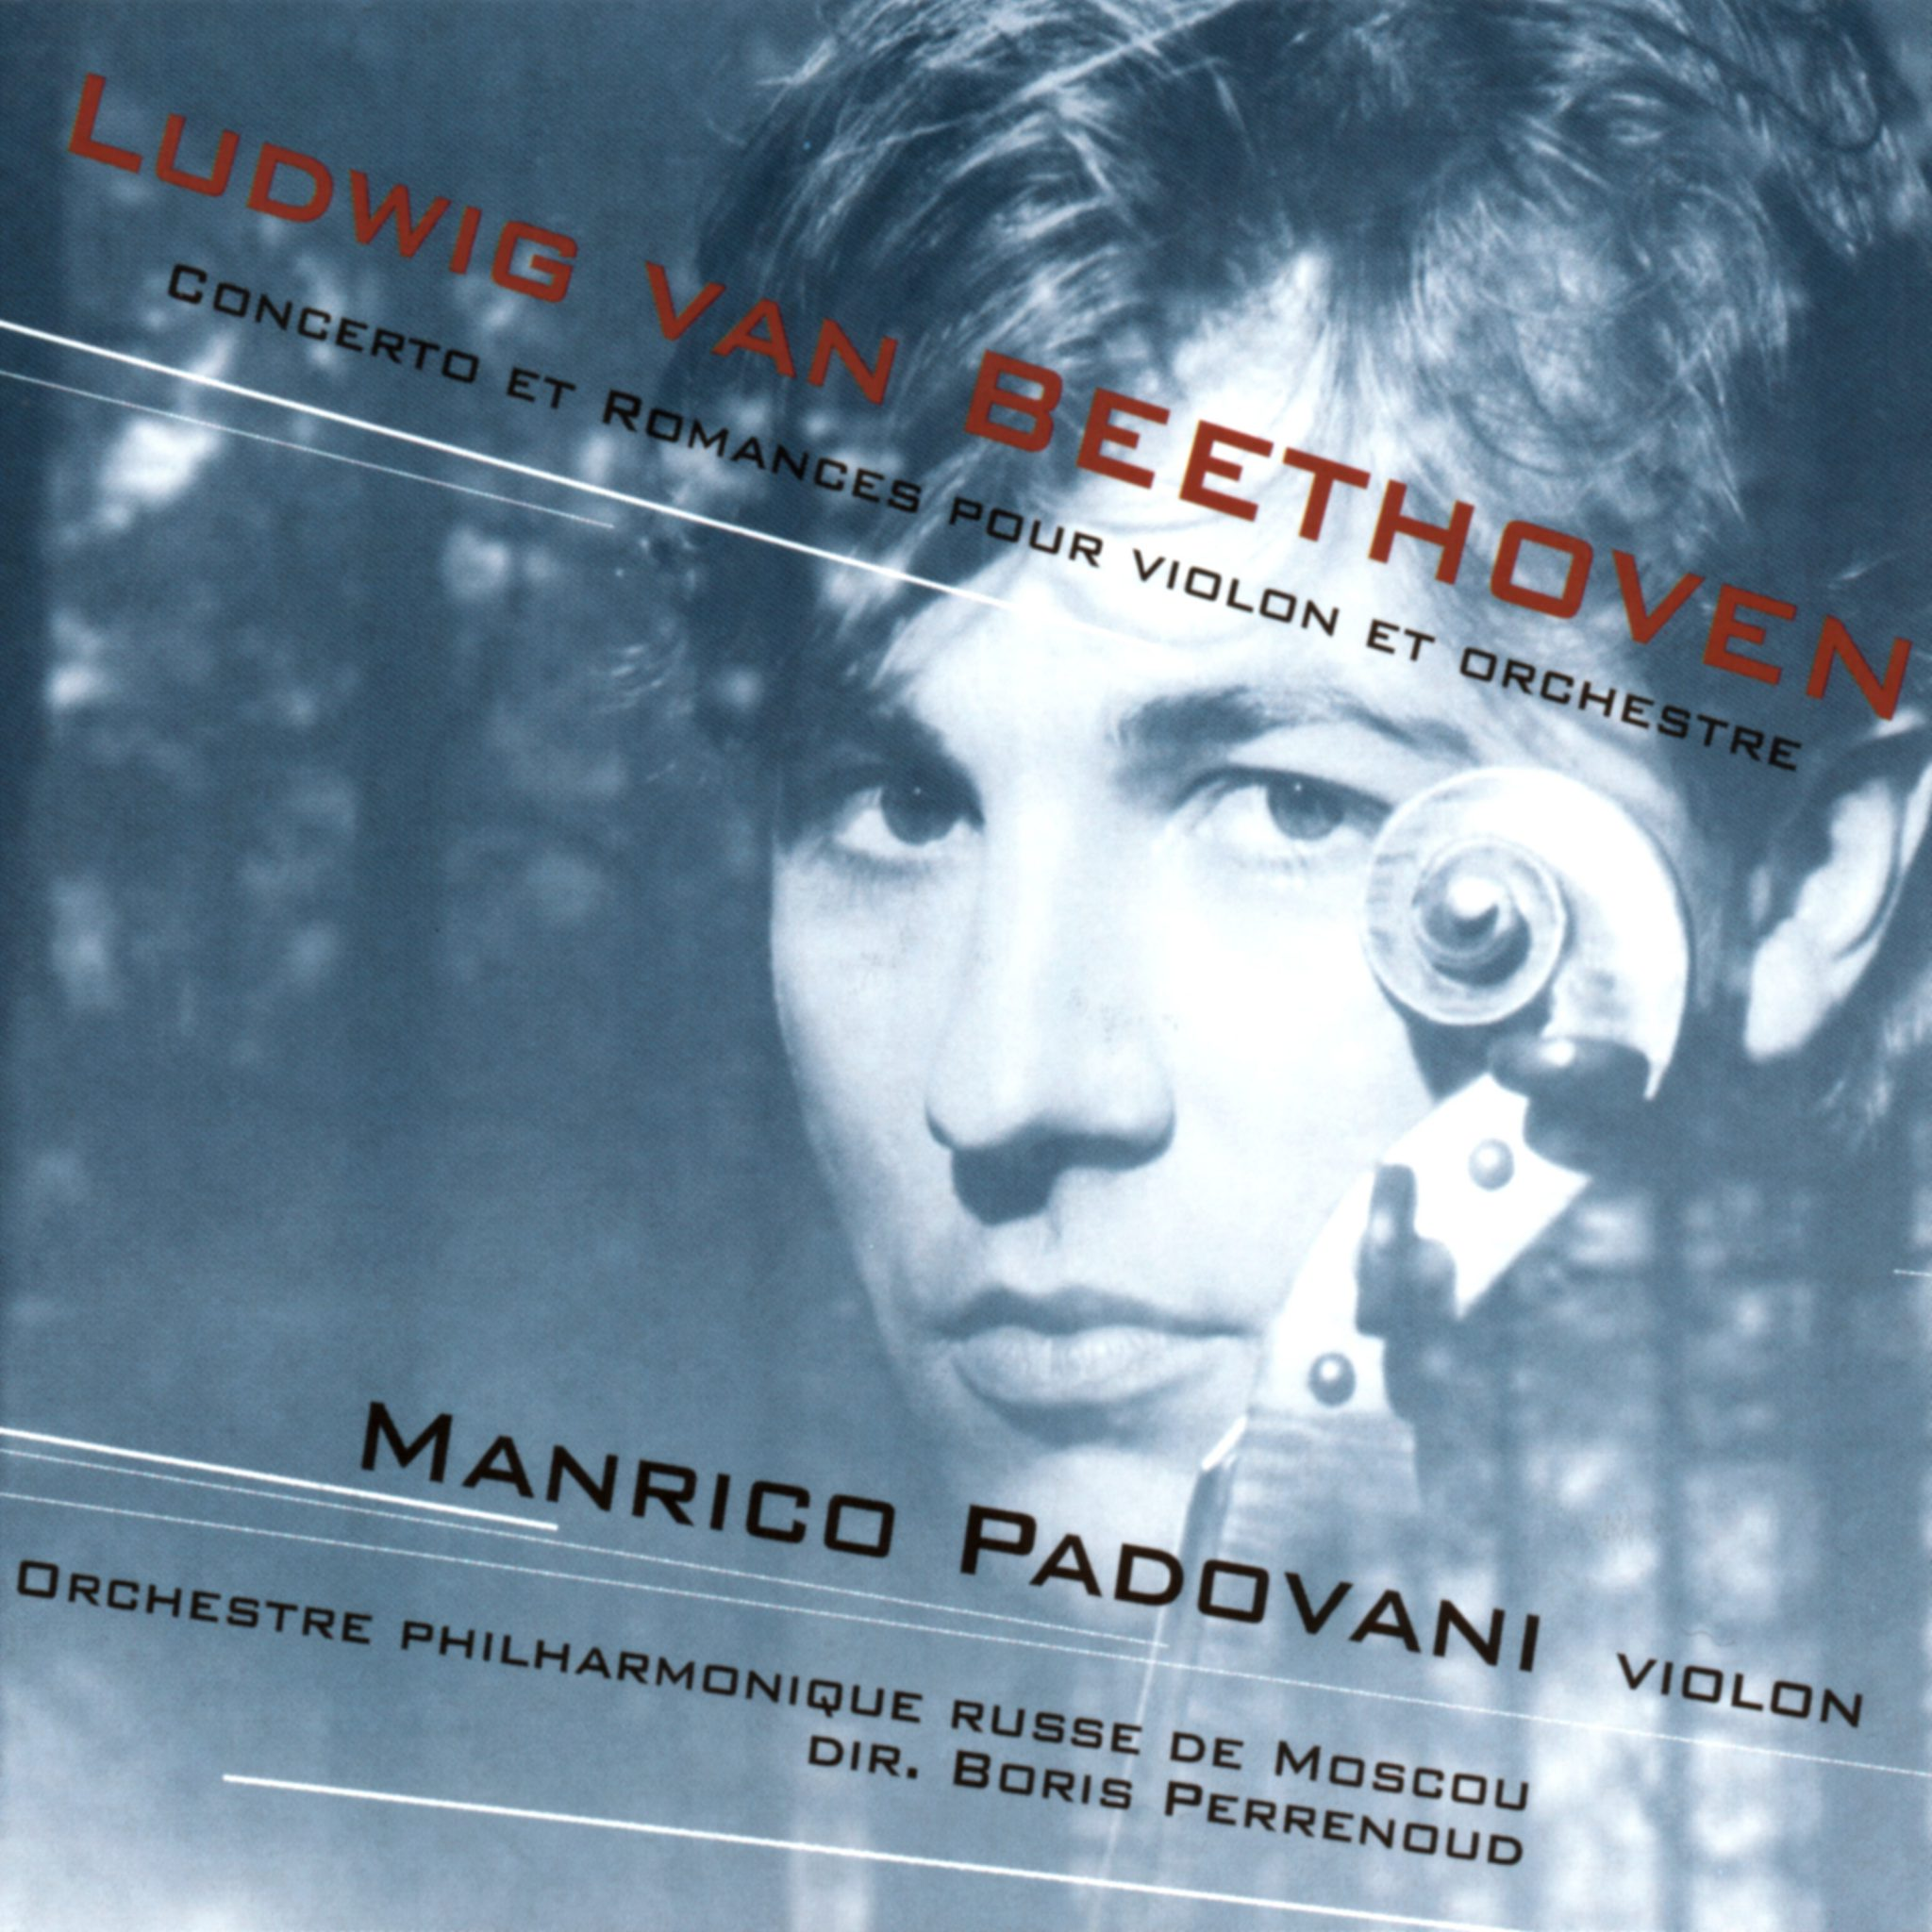 Beethoven - Violin Concerto - Manrico Padovani - Moscow Philharmonic Orchestra